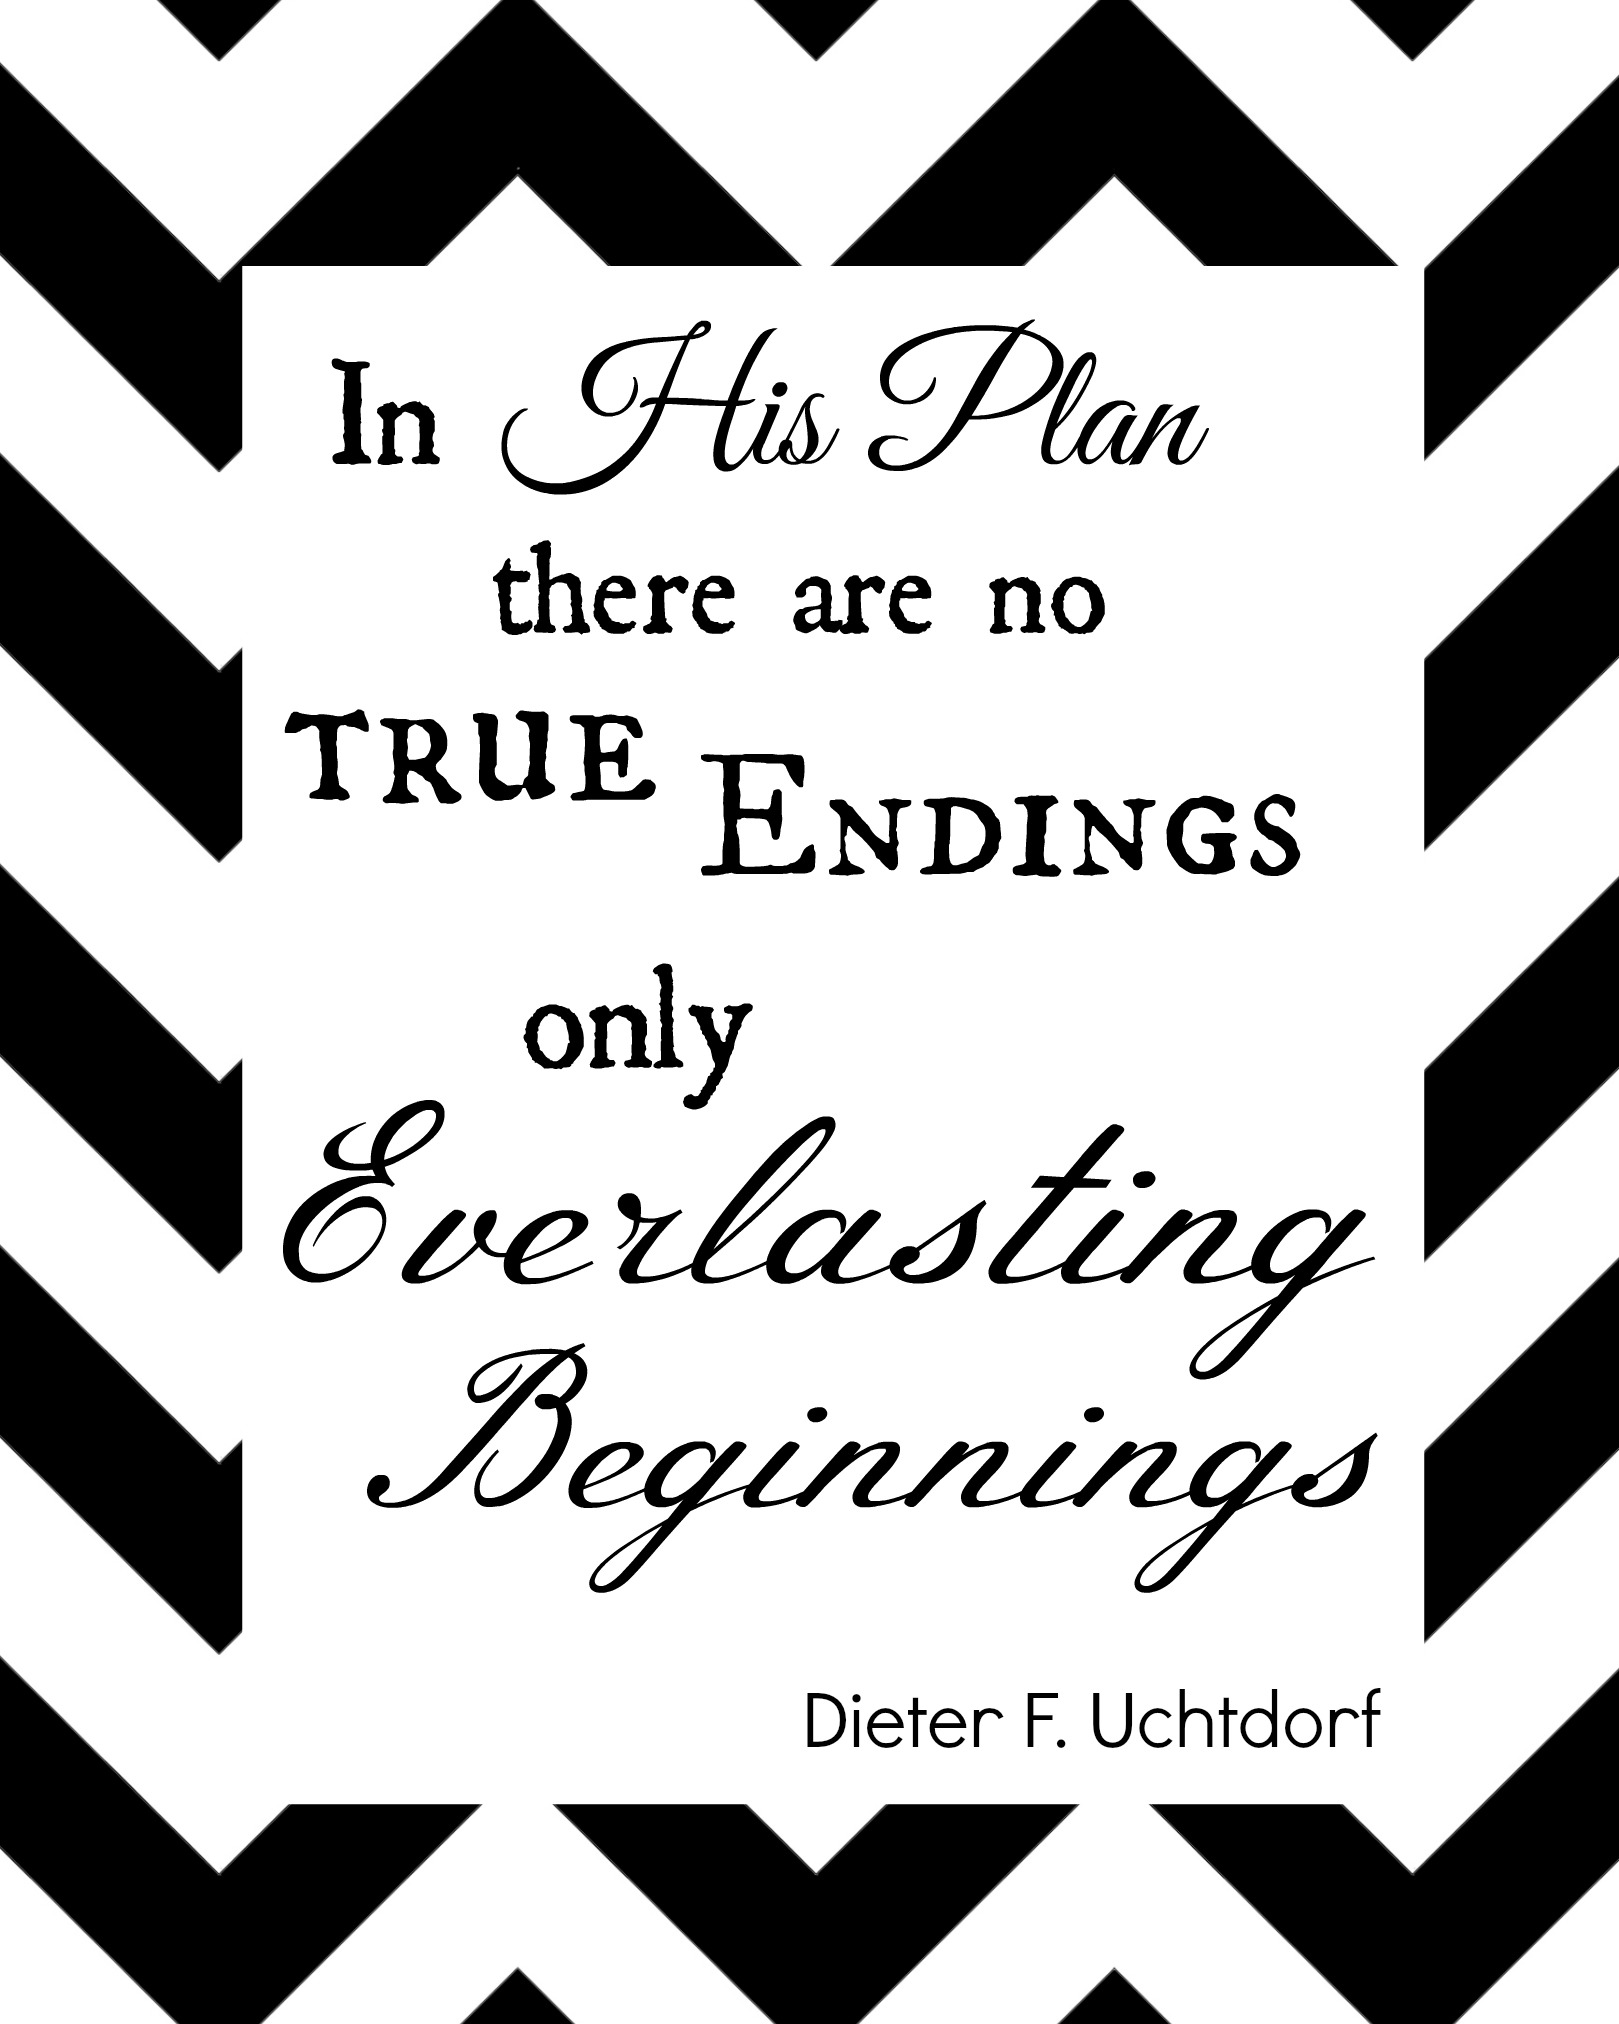 EverlastingBeginnings